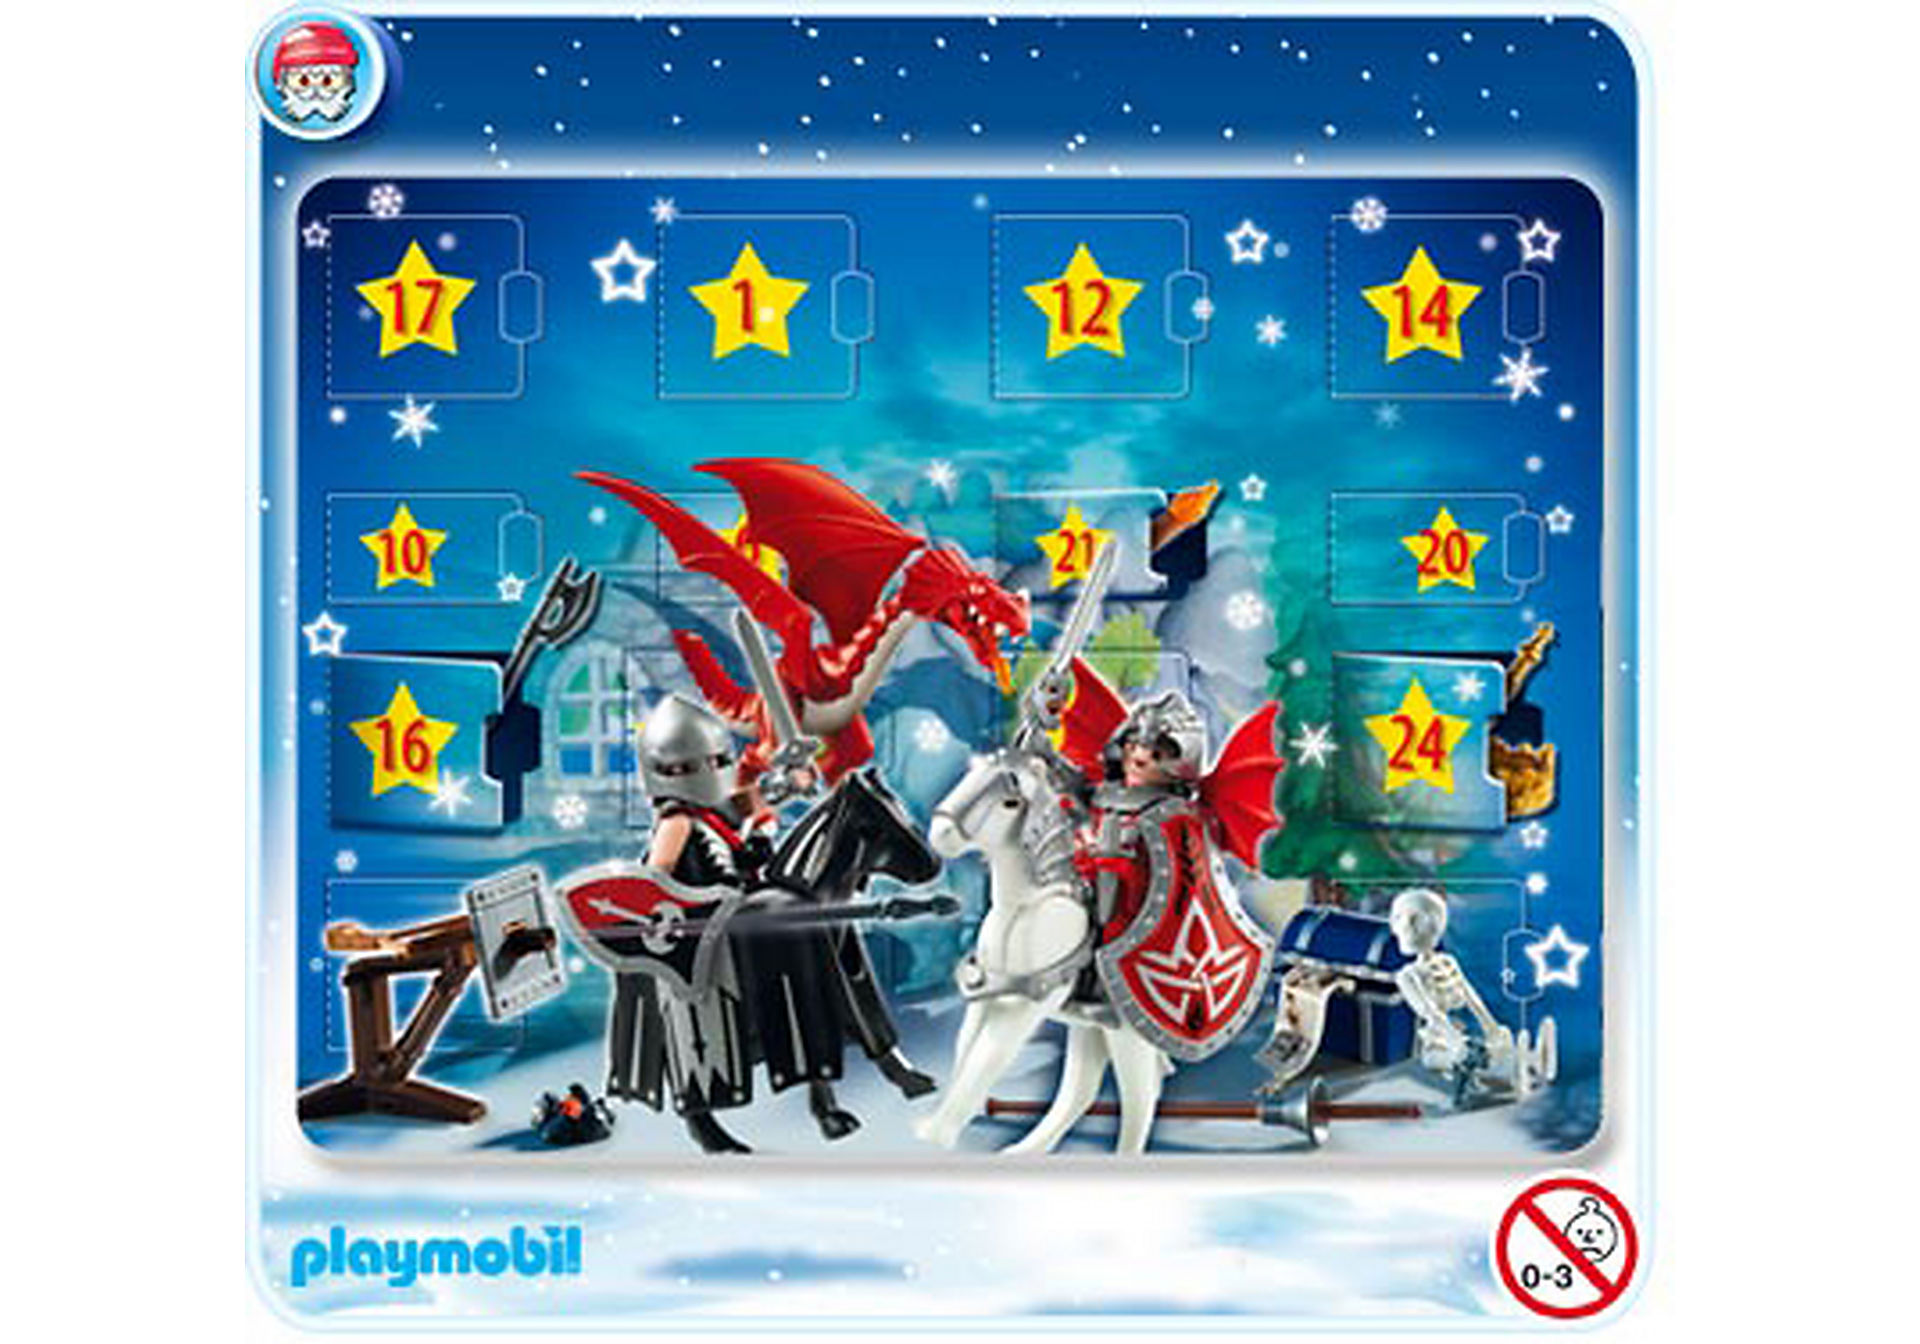 http://media.playmobil.com/i/playmobil/4160-A_product_detail/Adventskalender Drachenland